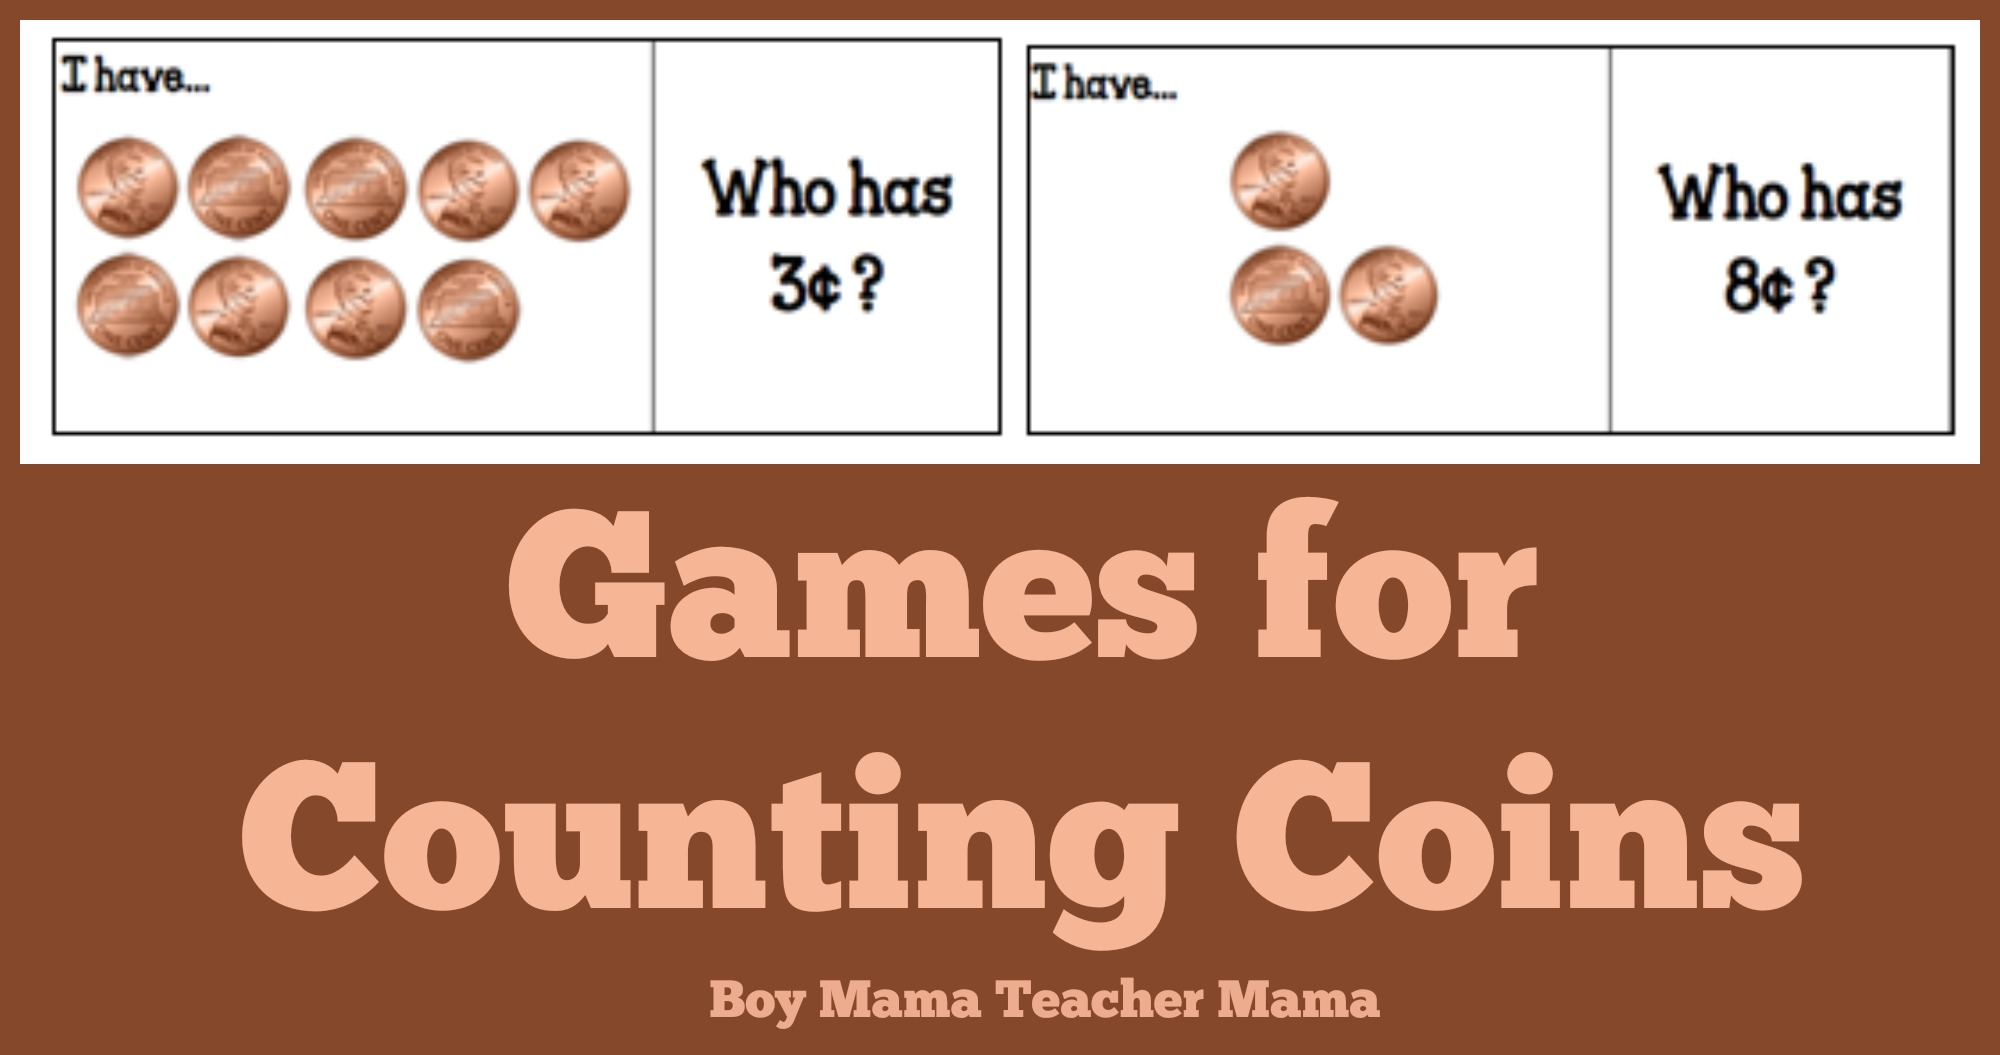 Boy Mama Teacher Mama Games for Counting Coins.jpg